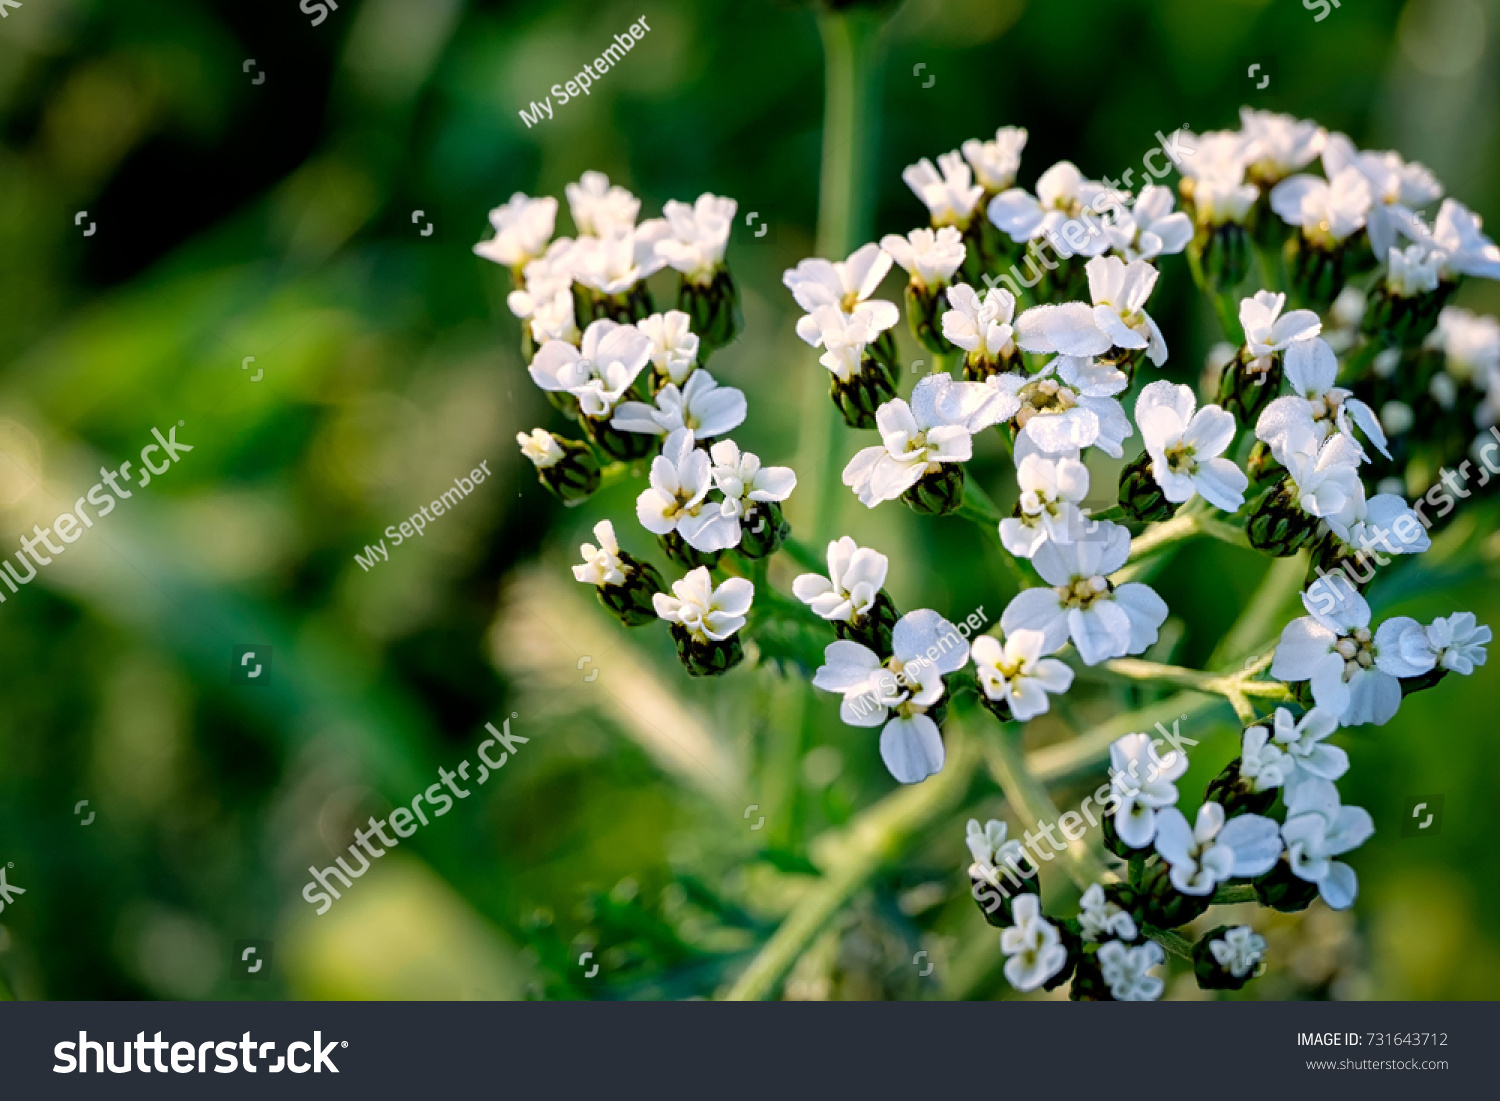 Closeup Of Small White Flowers On Bush Floral Background Ez Canvas